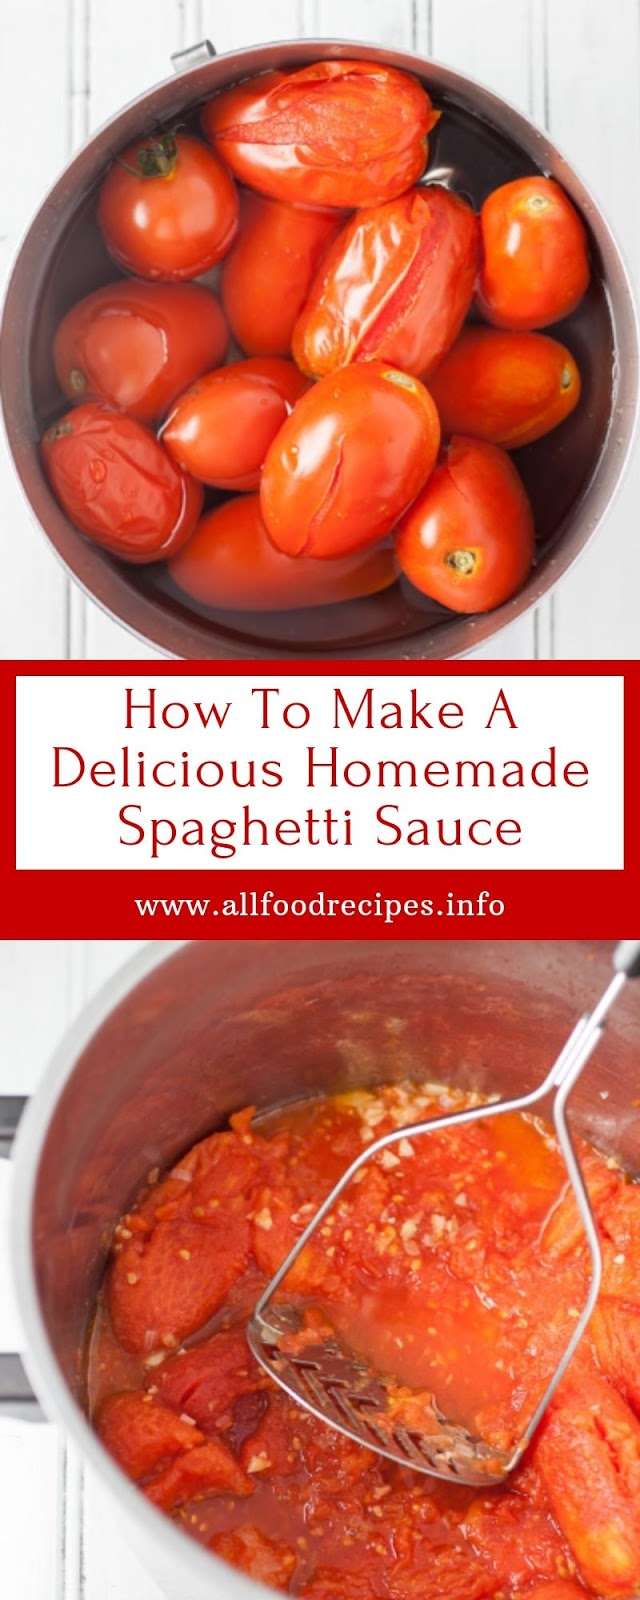 How To Make A Delicious Homemade Spaghetti Sauce